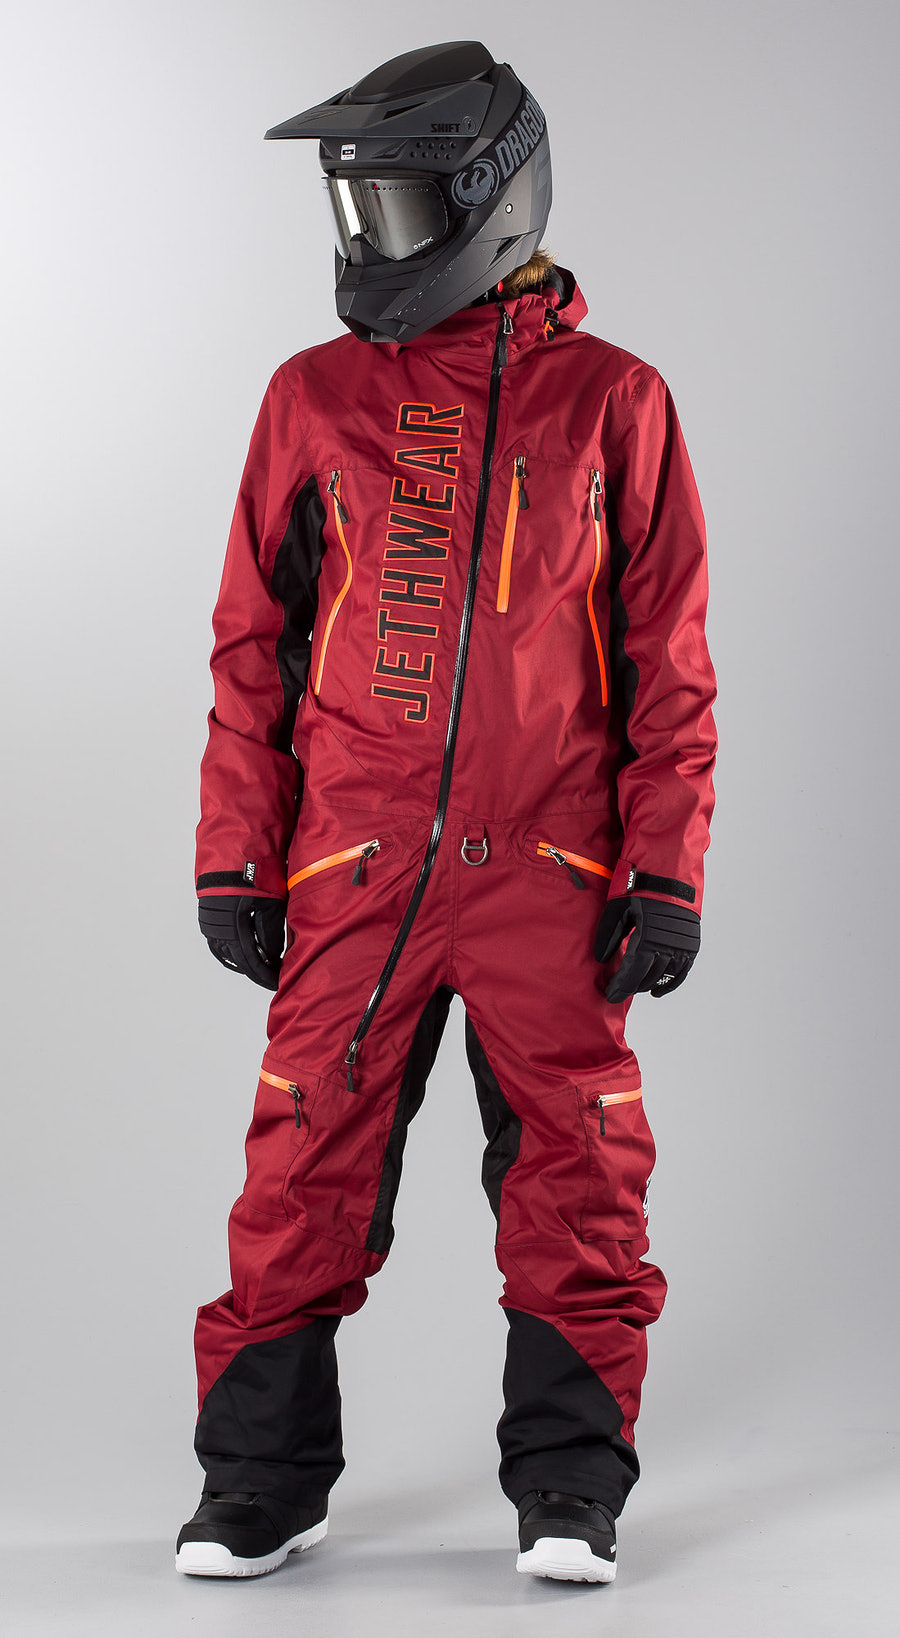 Jethwear The One  Burgundy Snowmobile clothing Multi